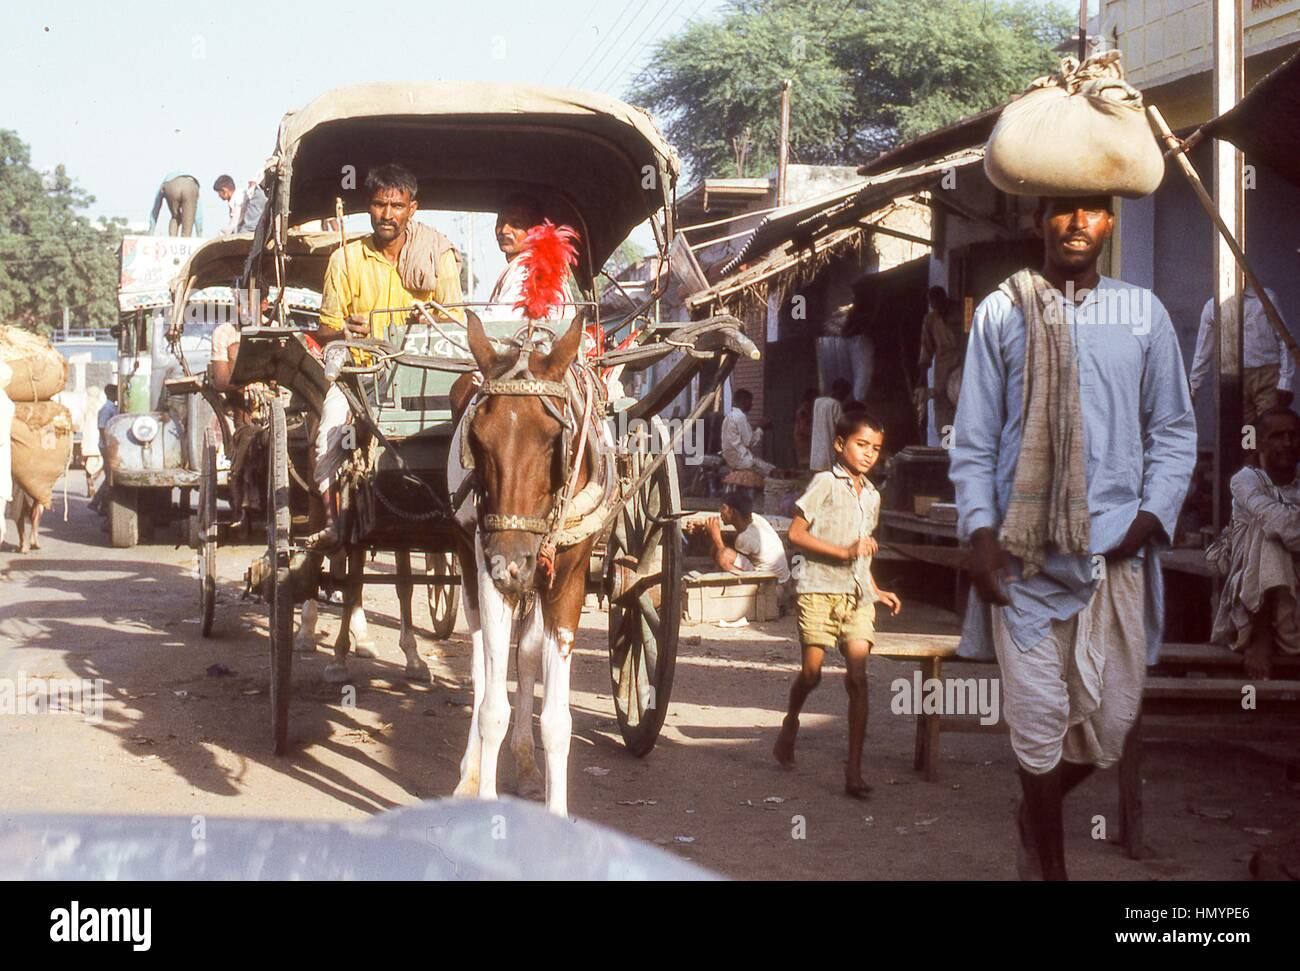 Scene of Indian men and boys leading horse-drawn carriages in the street outside the shop stalls of the Sadar Bazaar - Stock Image